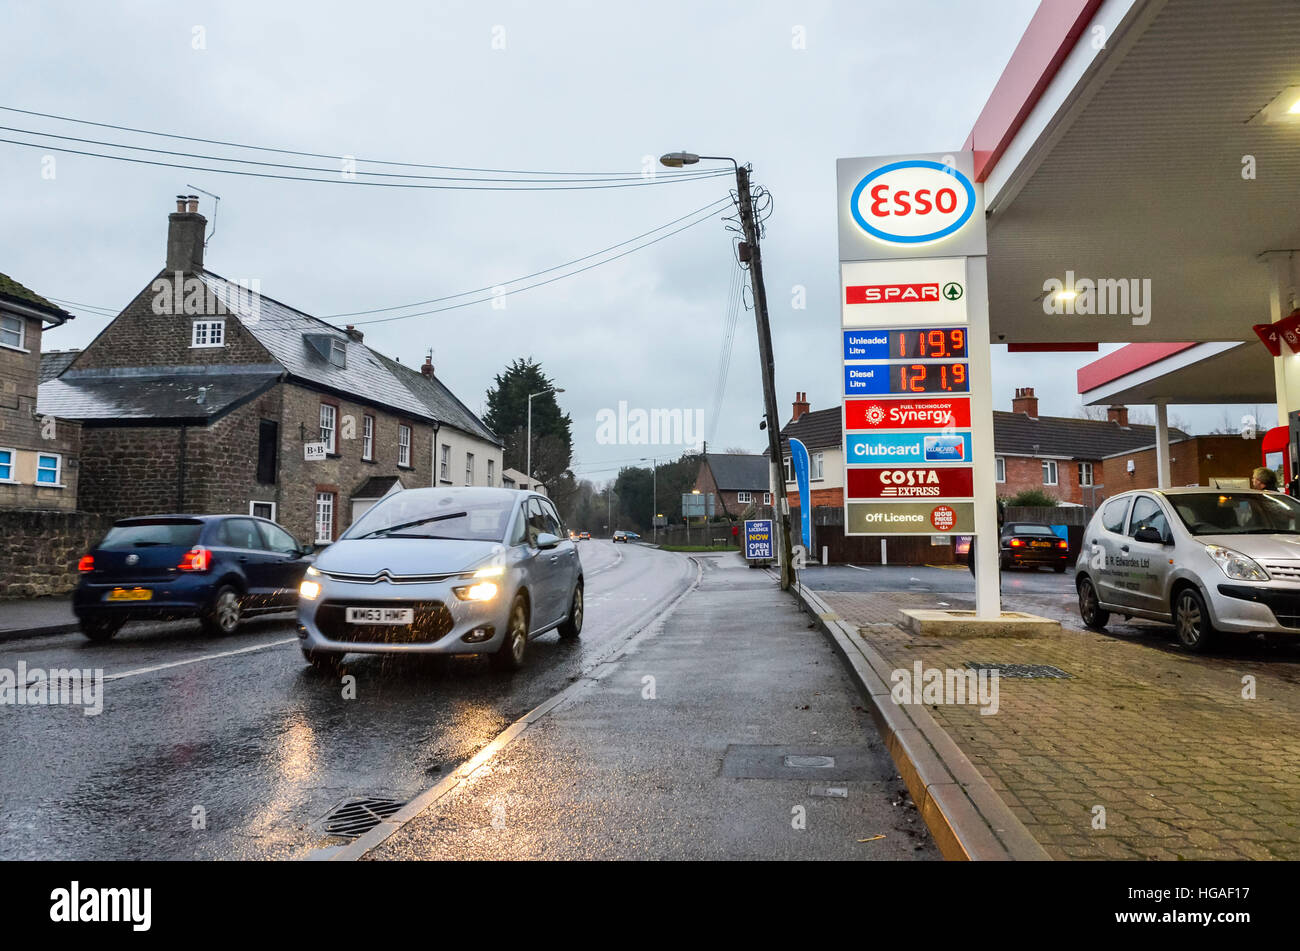 Bridport, Dorset, UK.   6th January 2017.  The Esso petrol station on East Road, Bridport with Petrol and Diesel - Stock Image